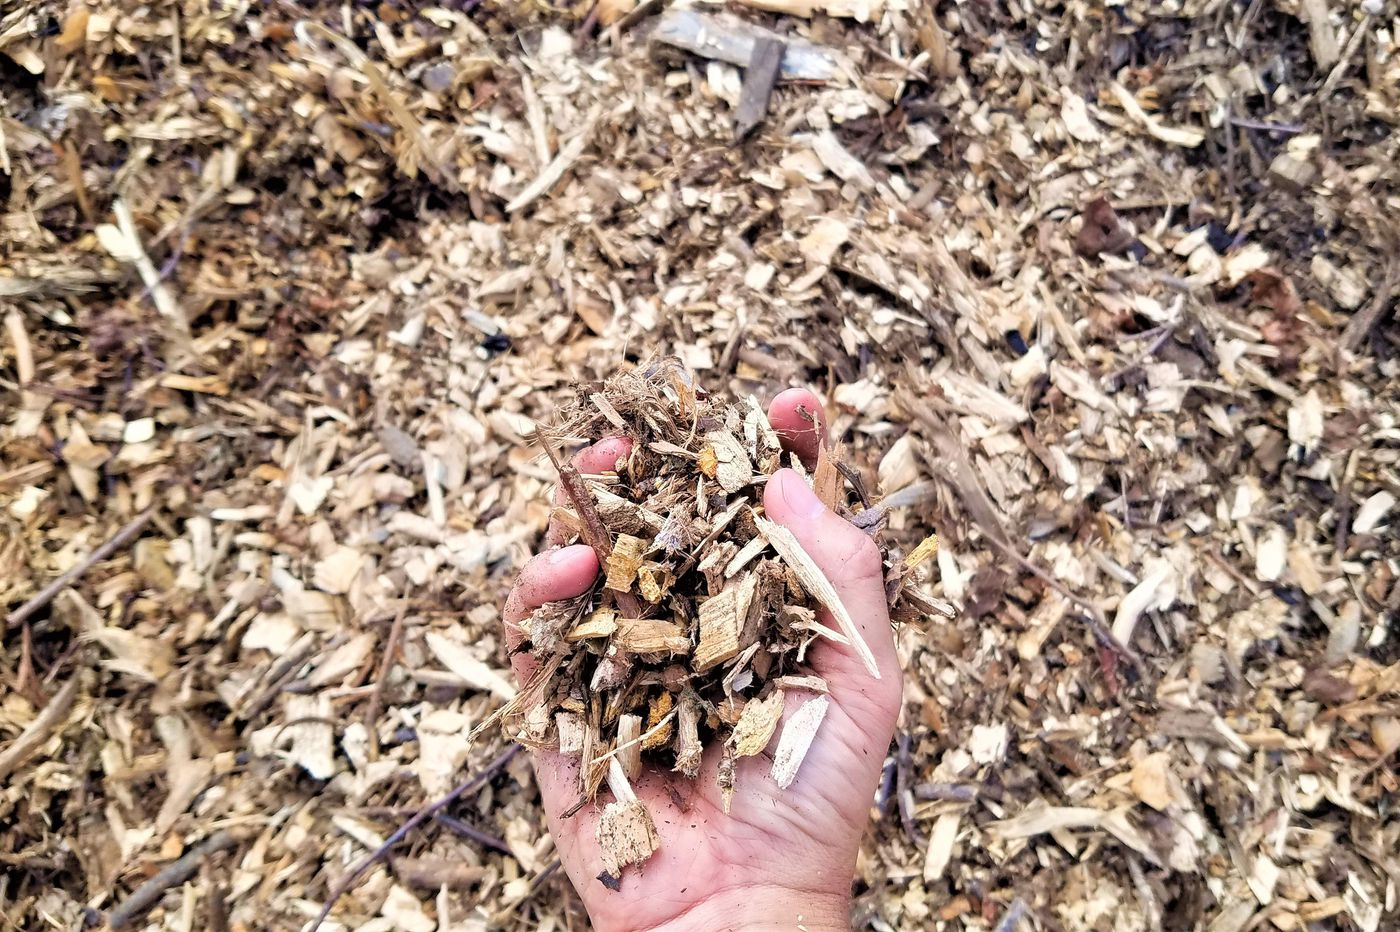 Philly has a big surplus of wood chips and firewood due to COVID-19 and storms. Residents, come and get it.